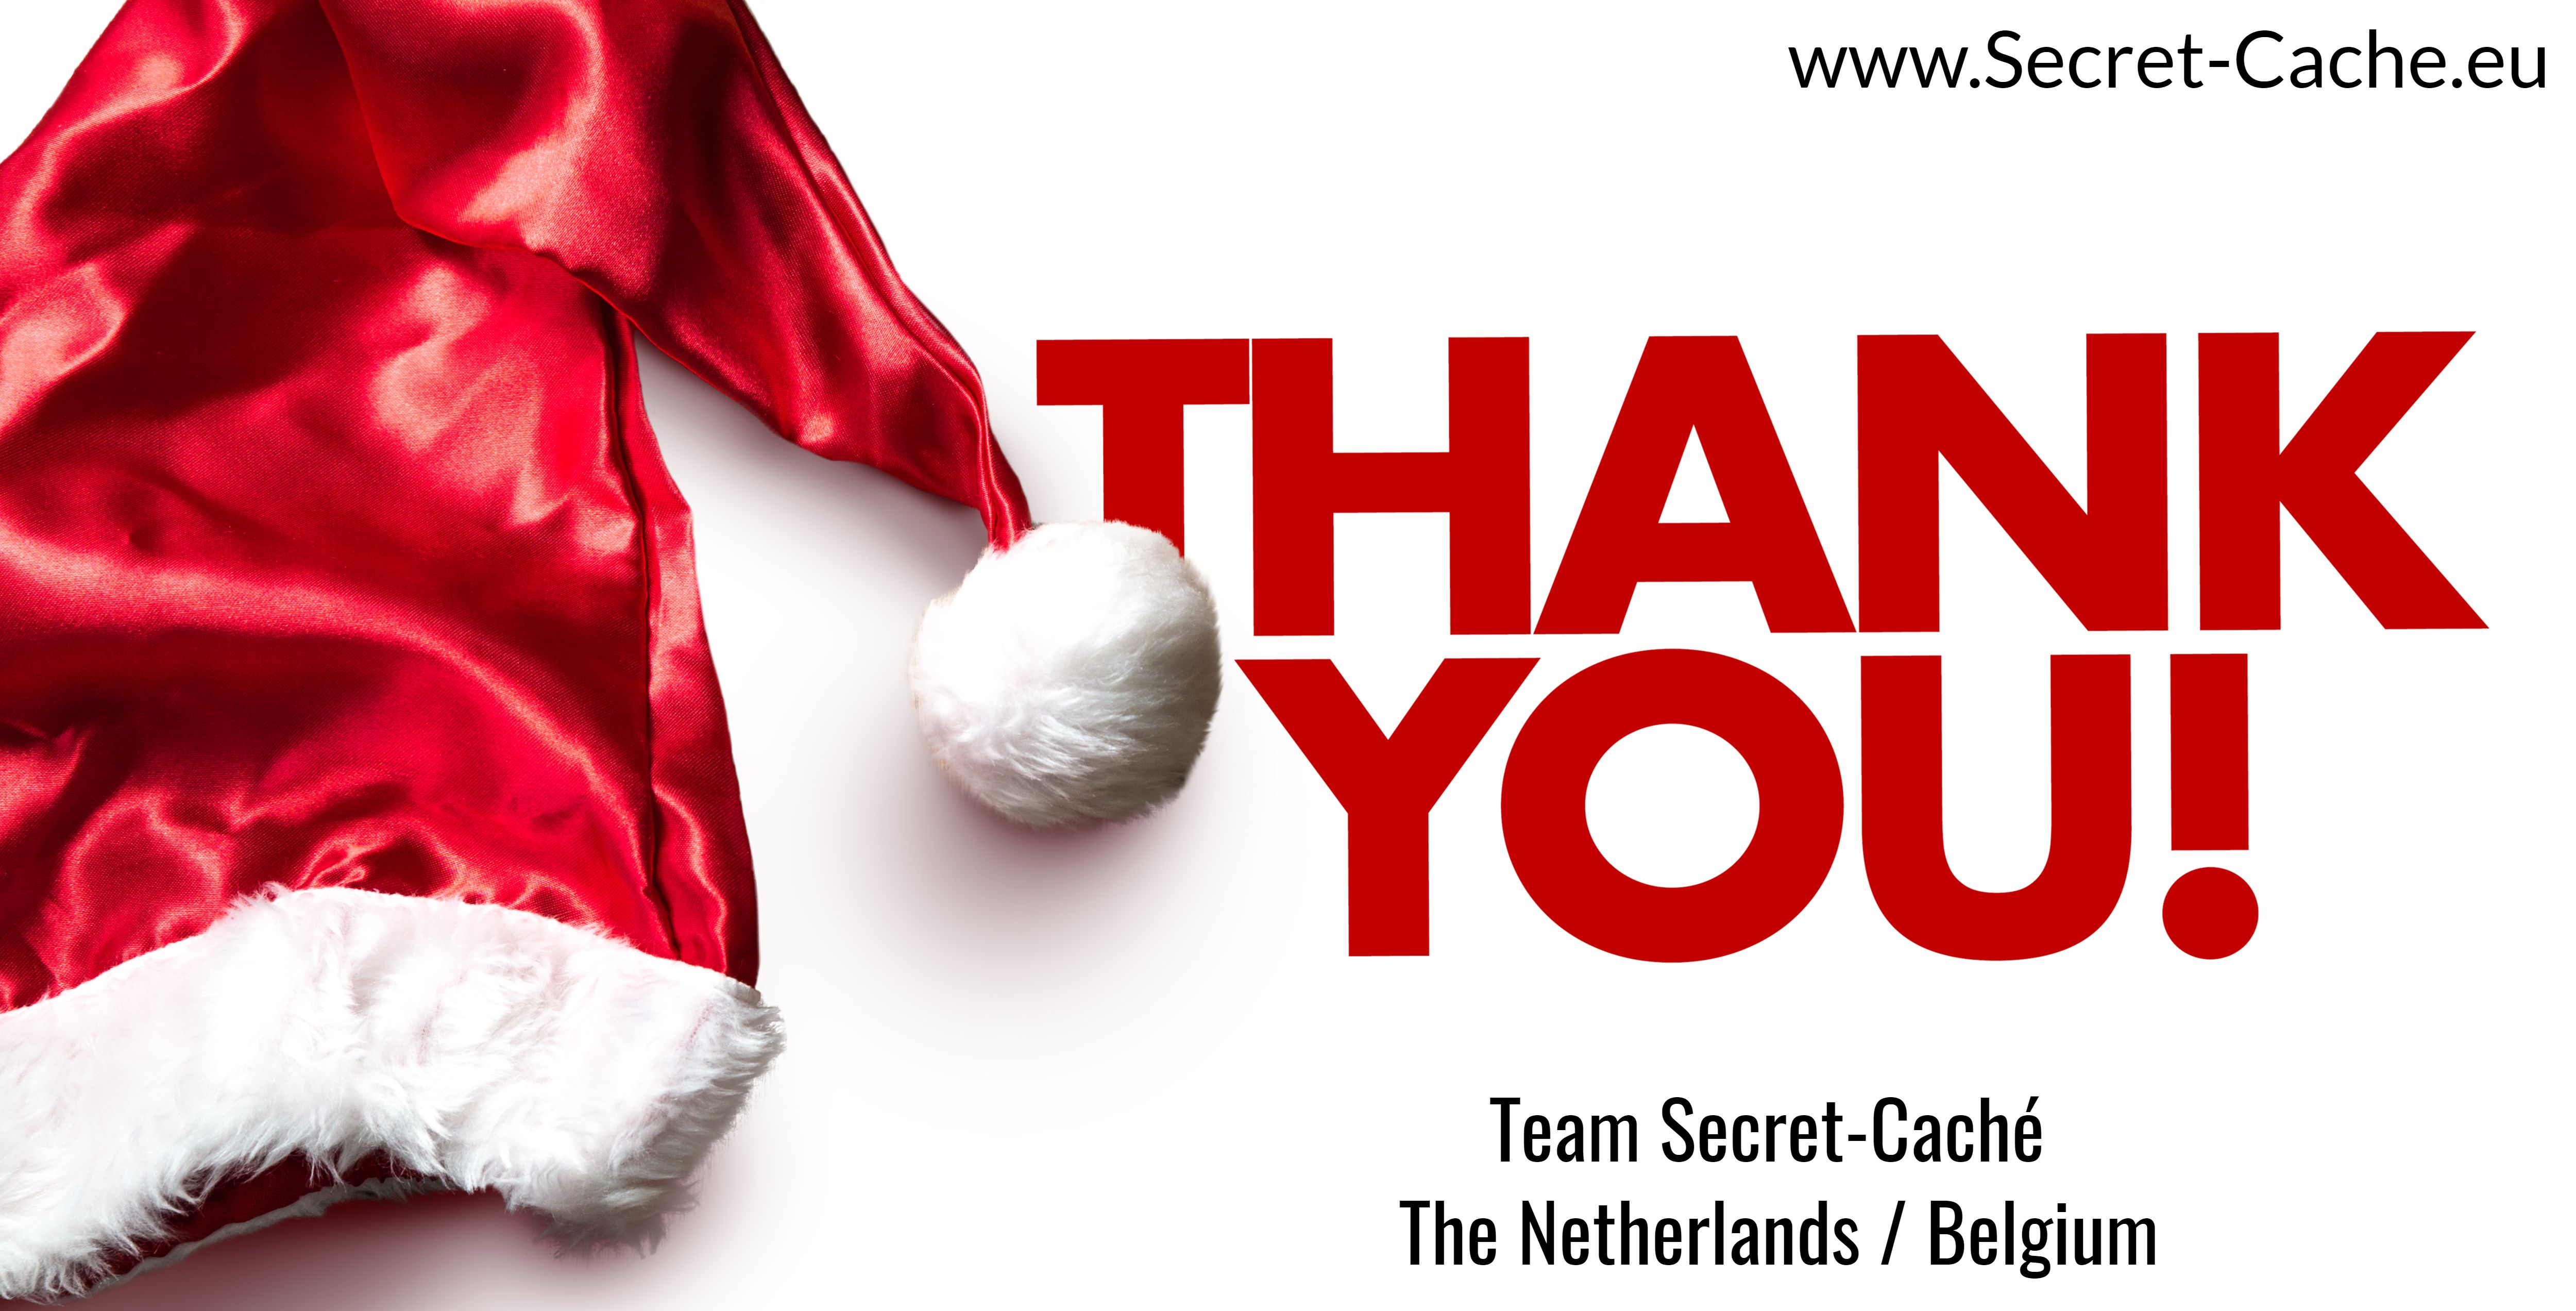 Still one day to go before Christmas! Thanks team Secret